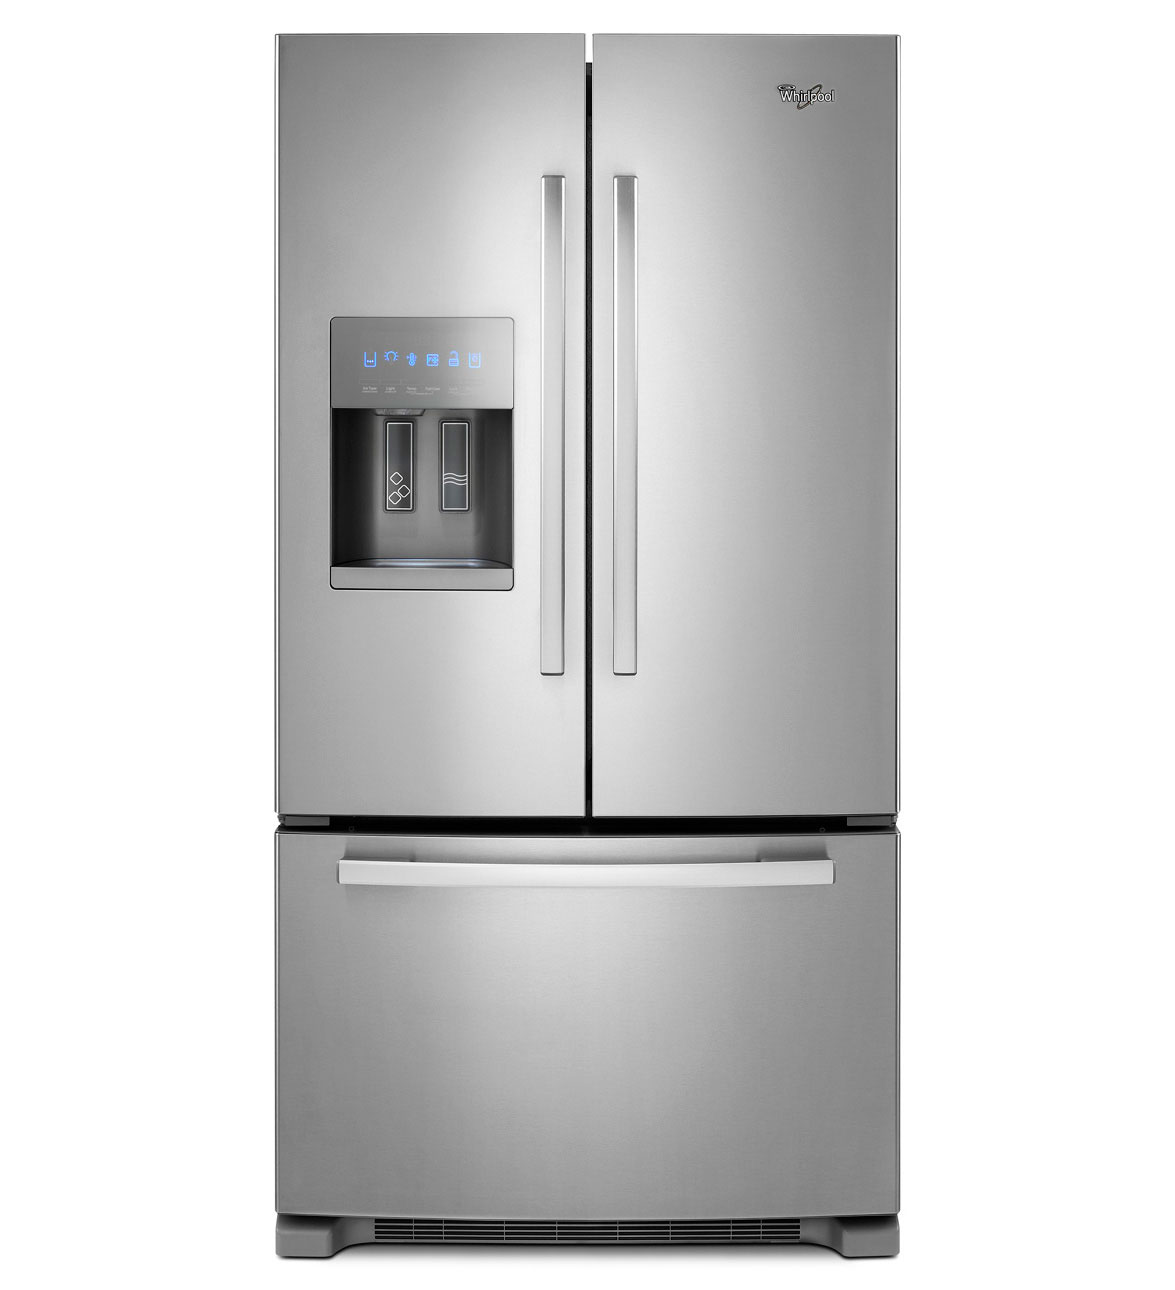 00001 likewise Samsung Refrigerator Service Centre Fridges Freezers as well 1055880 also 00001 likewise Diy Troubleshooting Guide Refrigerator. on haier refrigerator not cooling